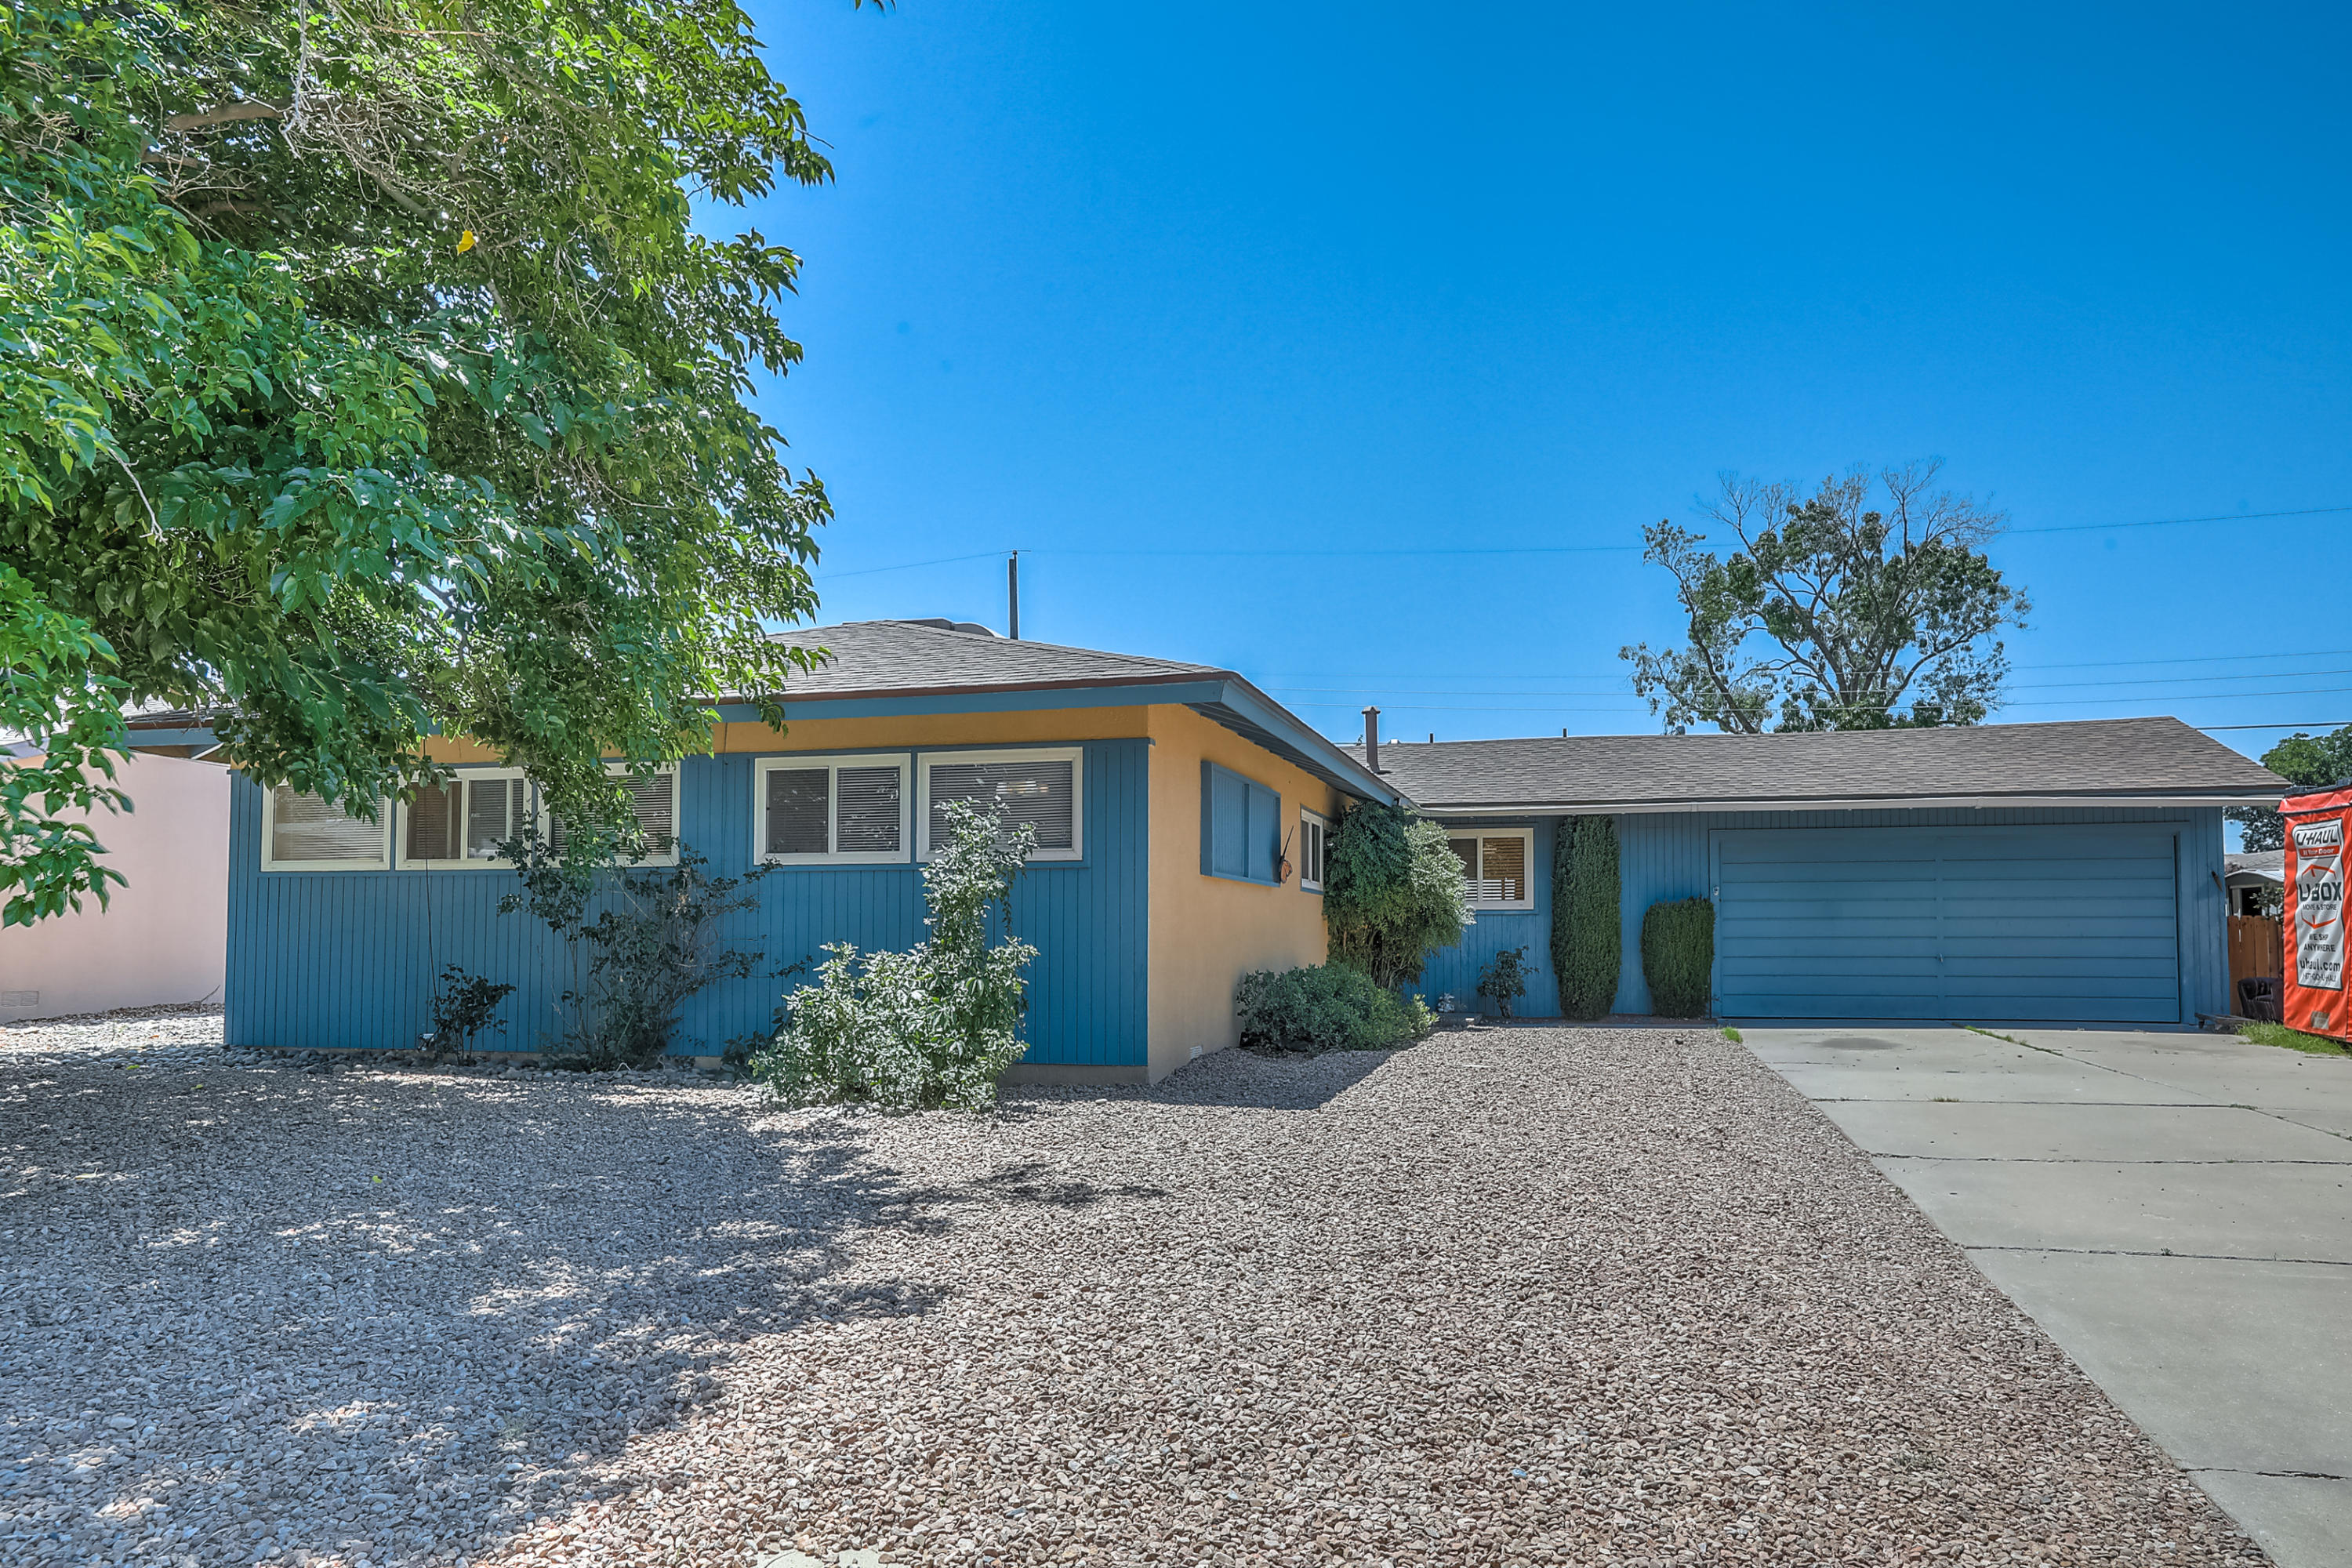 Come take a look at this beautiful 3 bedroom, 2 bathroom house in northeast Albuquerque. Multiple living and dining areas. Wood flooring in living room and bedrooms. Large driveway along with the garage. Roof was done within the last 3 years. Mastercool within the last 5. This won't last long!